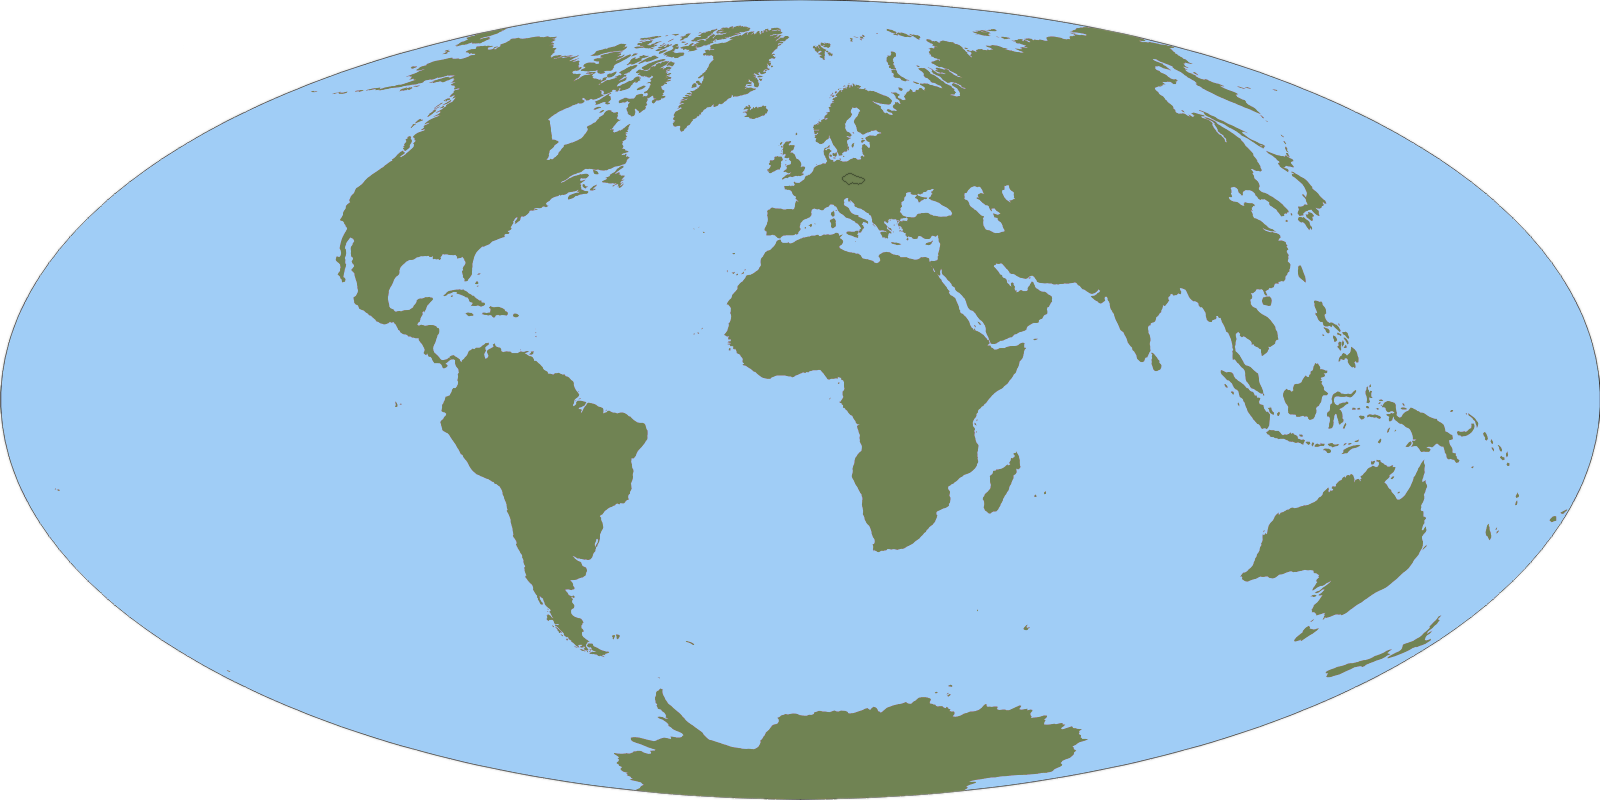 A world map with only oceans and continents distinguished. Czech Republic is slightly highlighted.